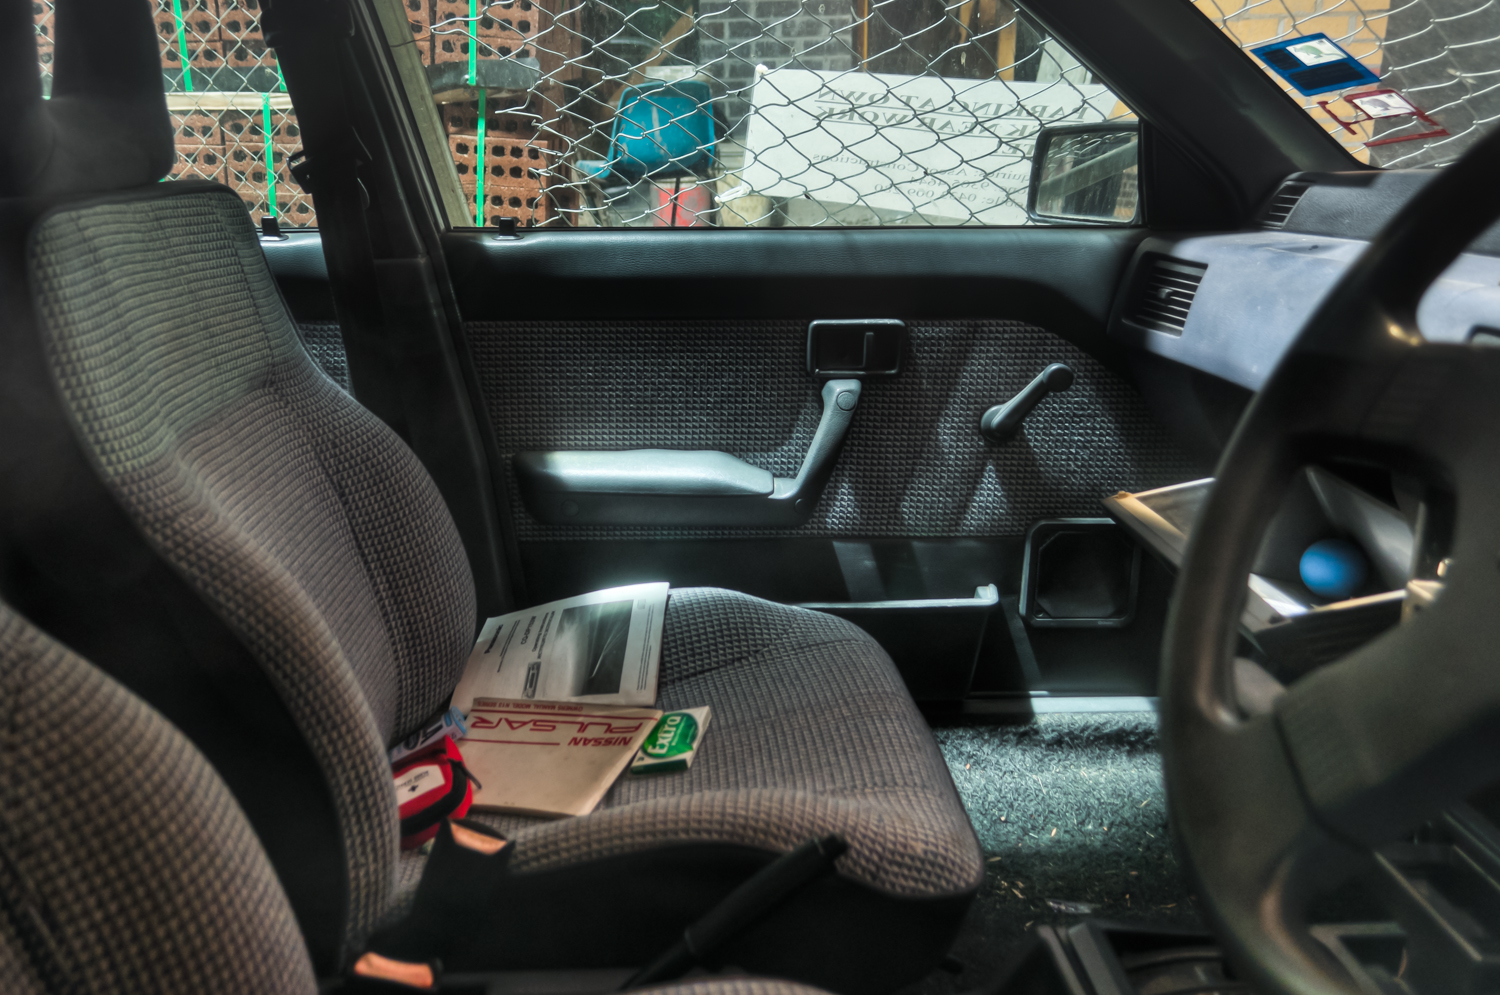 Auto Interior with Blue Ball.jpg